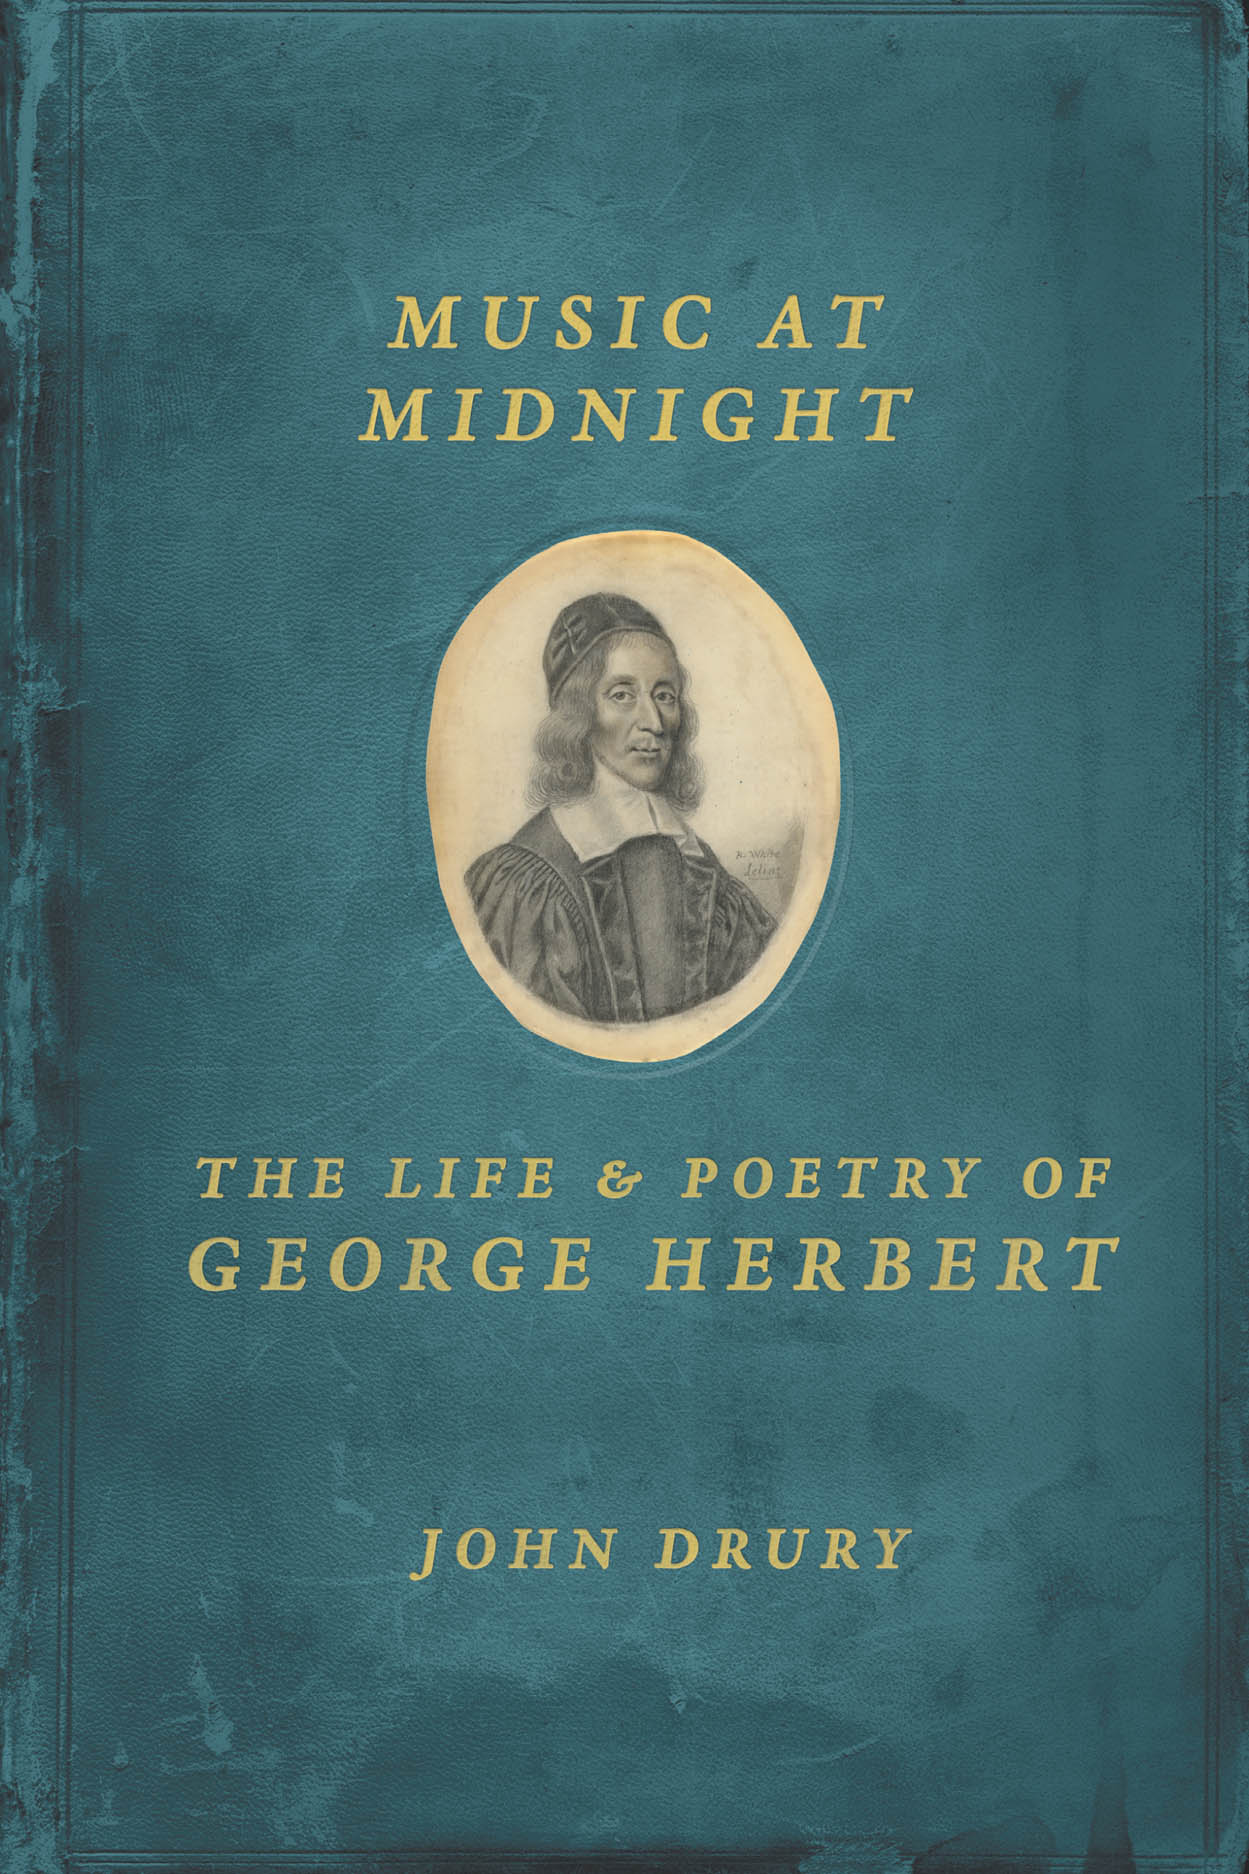 Music at Midnight: The Life and Poetry of George Herbert